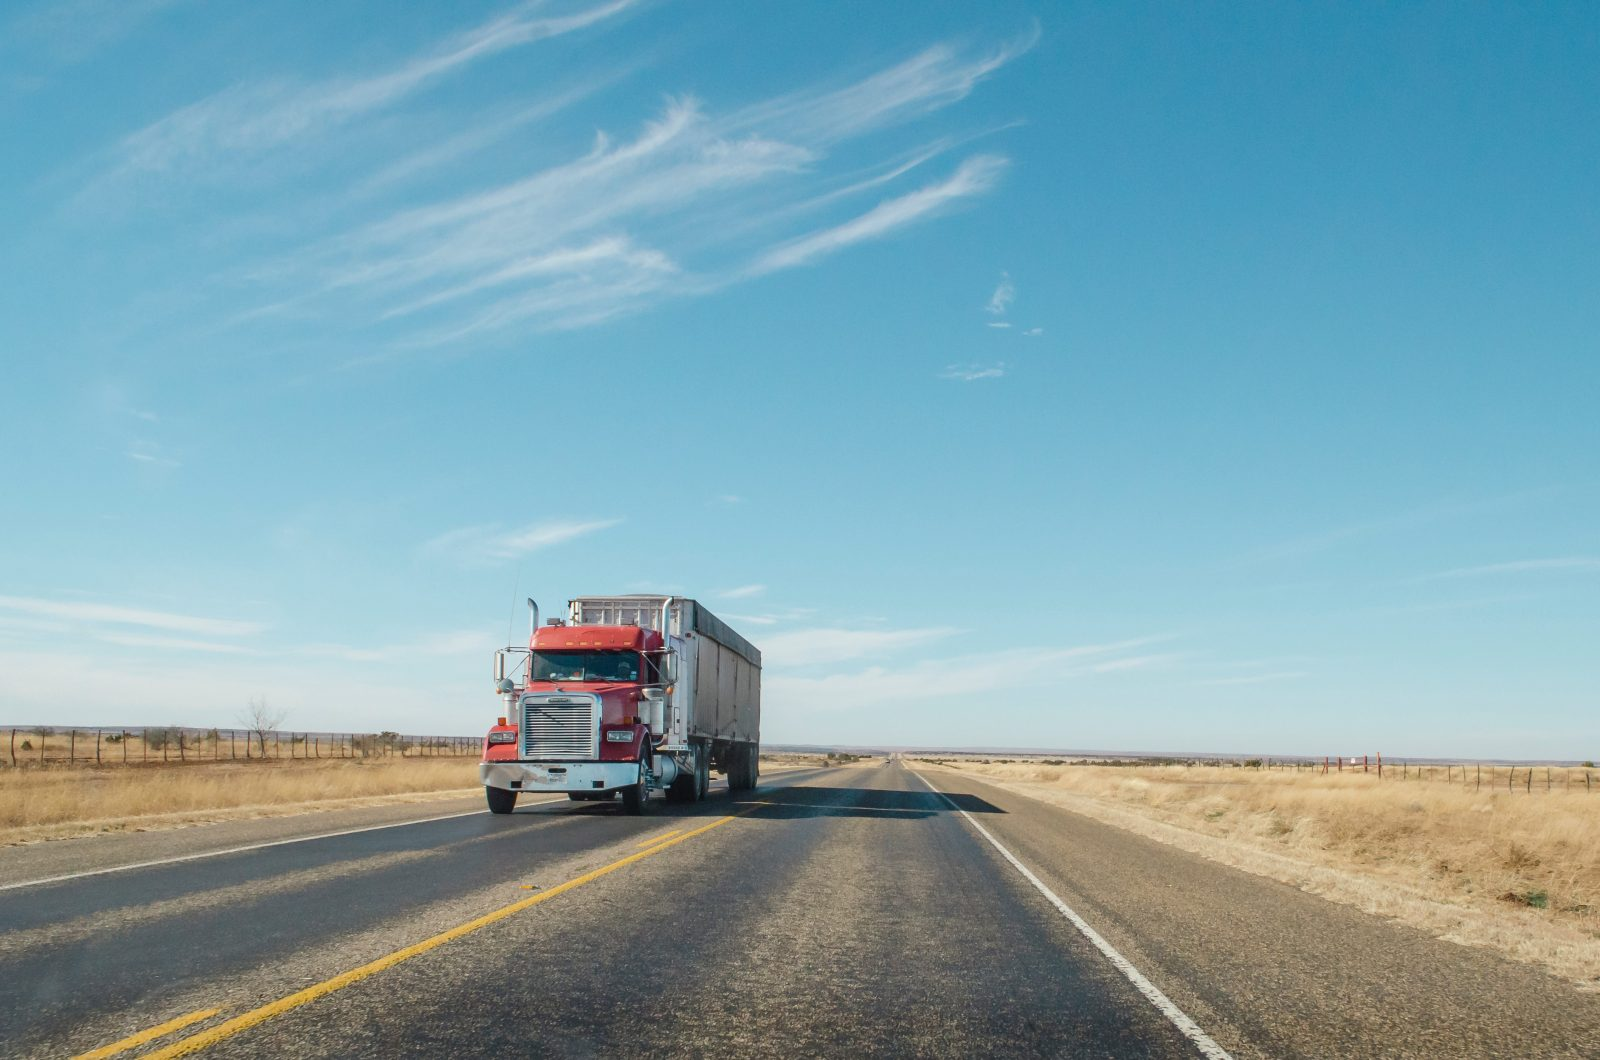 trailer truck passing on road during daytime